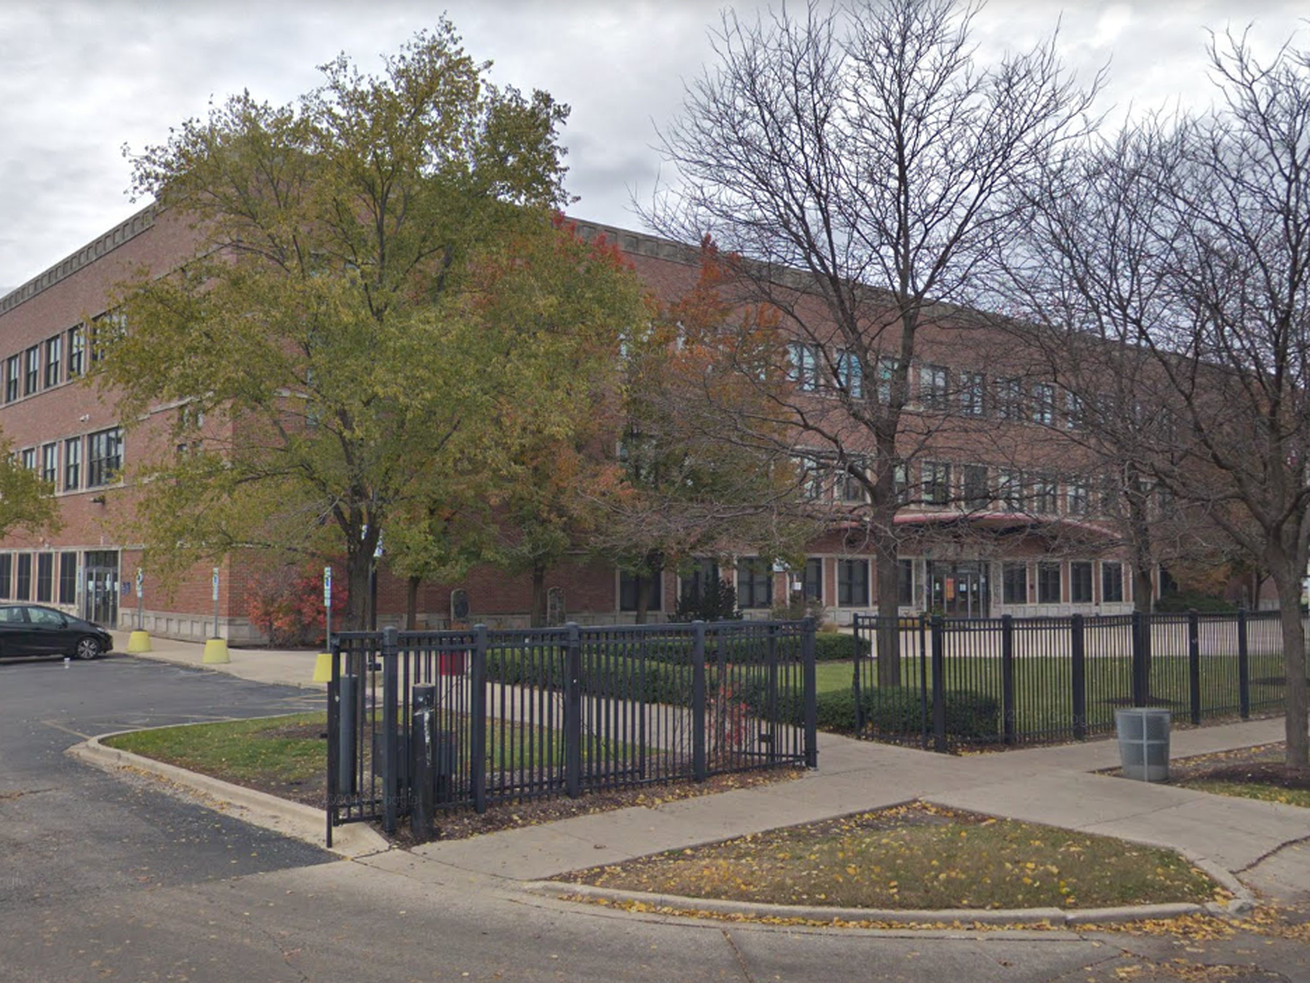 Marine Leadership Academy, 1920 N. Hamlin Ave., is one of two Chicago Public Schools placed on a